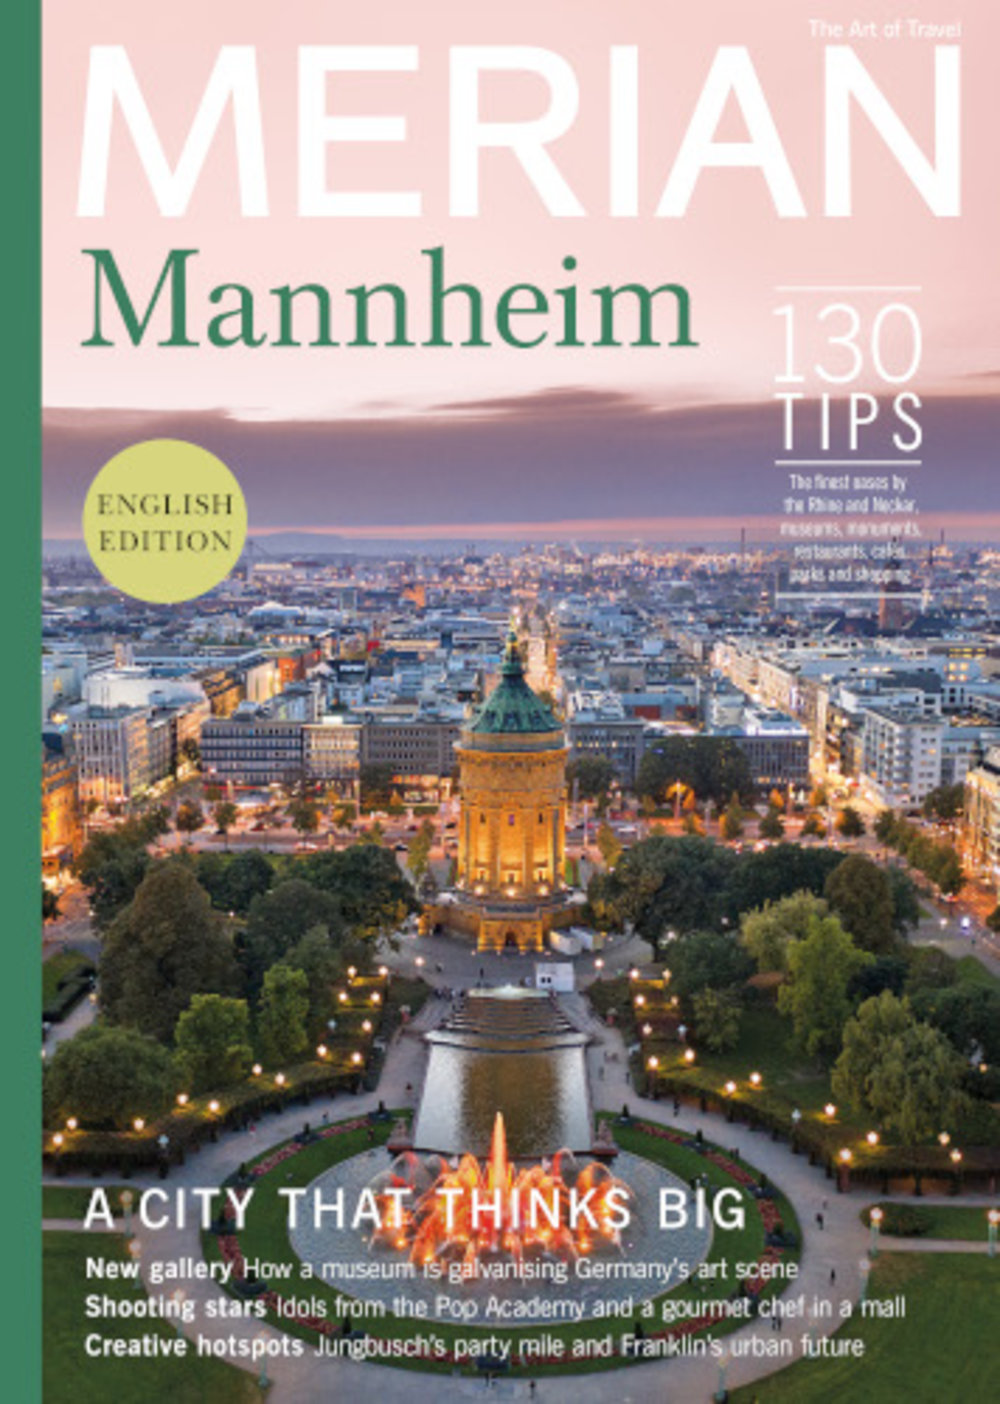 MERIAN English-Edition Mannheim